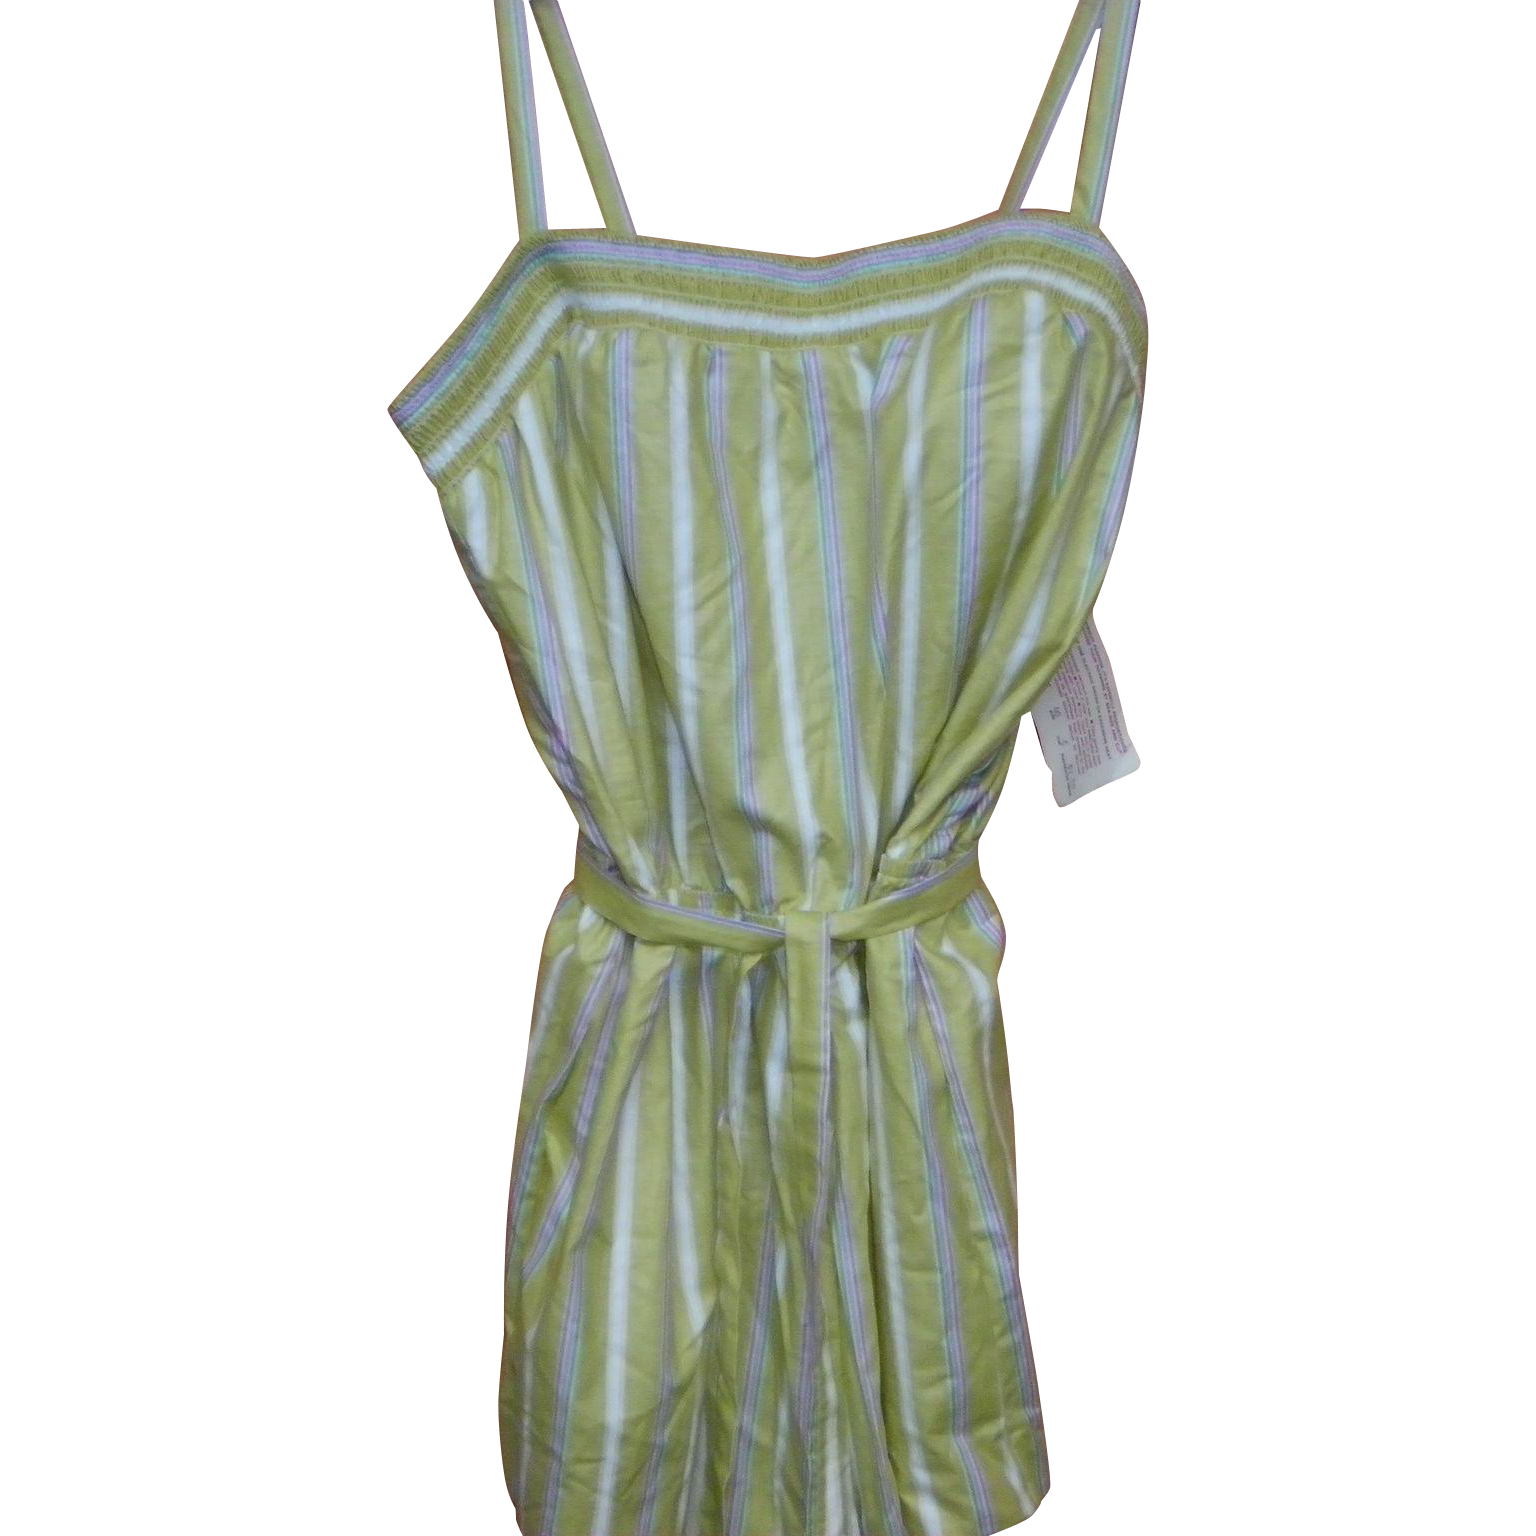 Vintage Bathing Suit / Swimsuit by Roxanne size 18/40 C With Tags